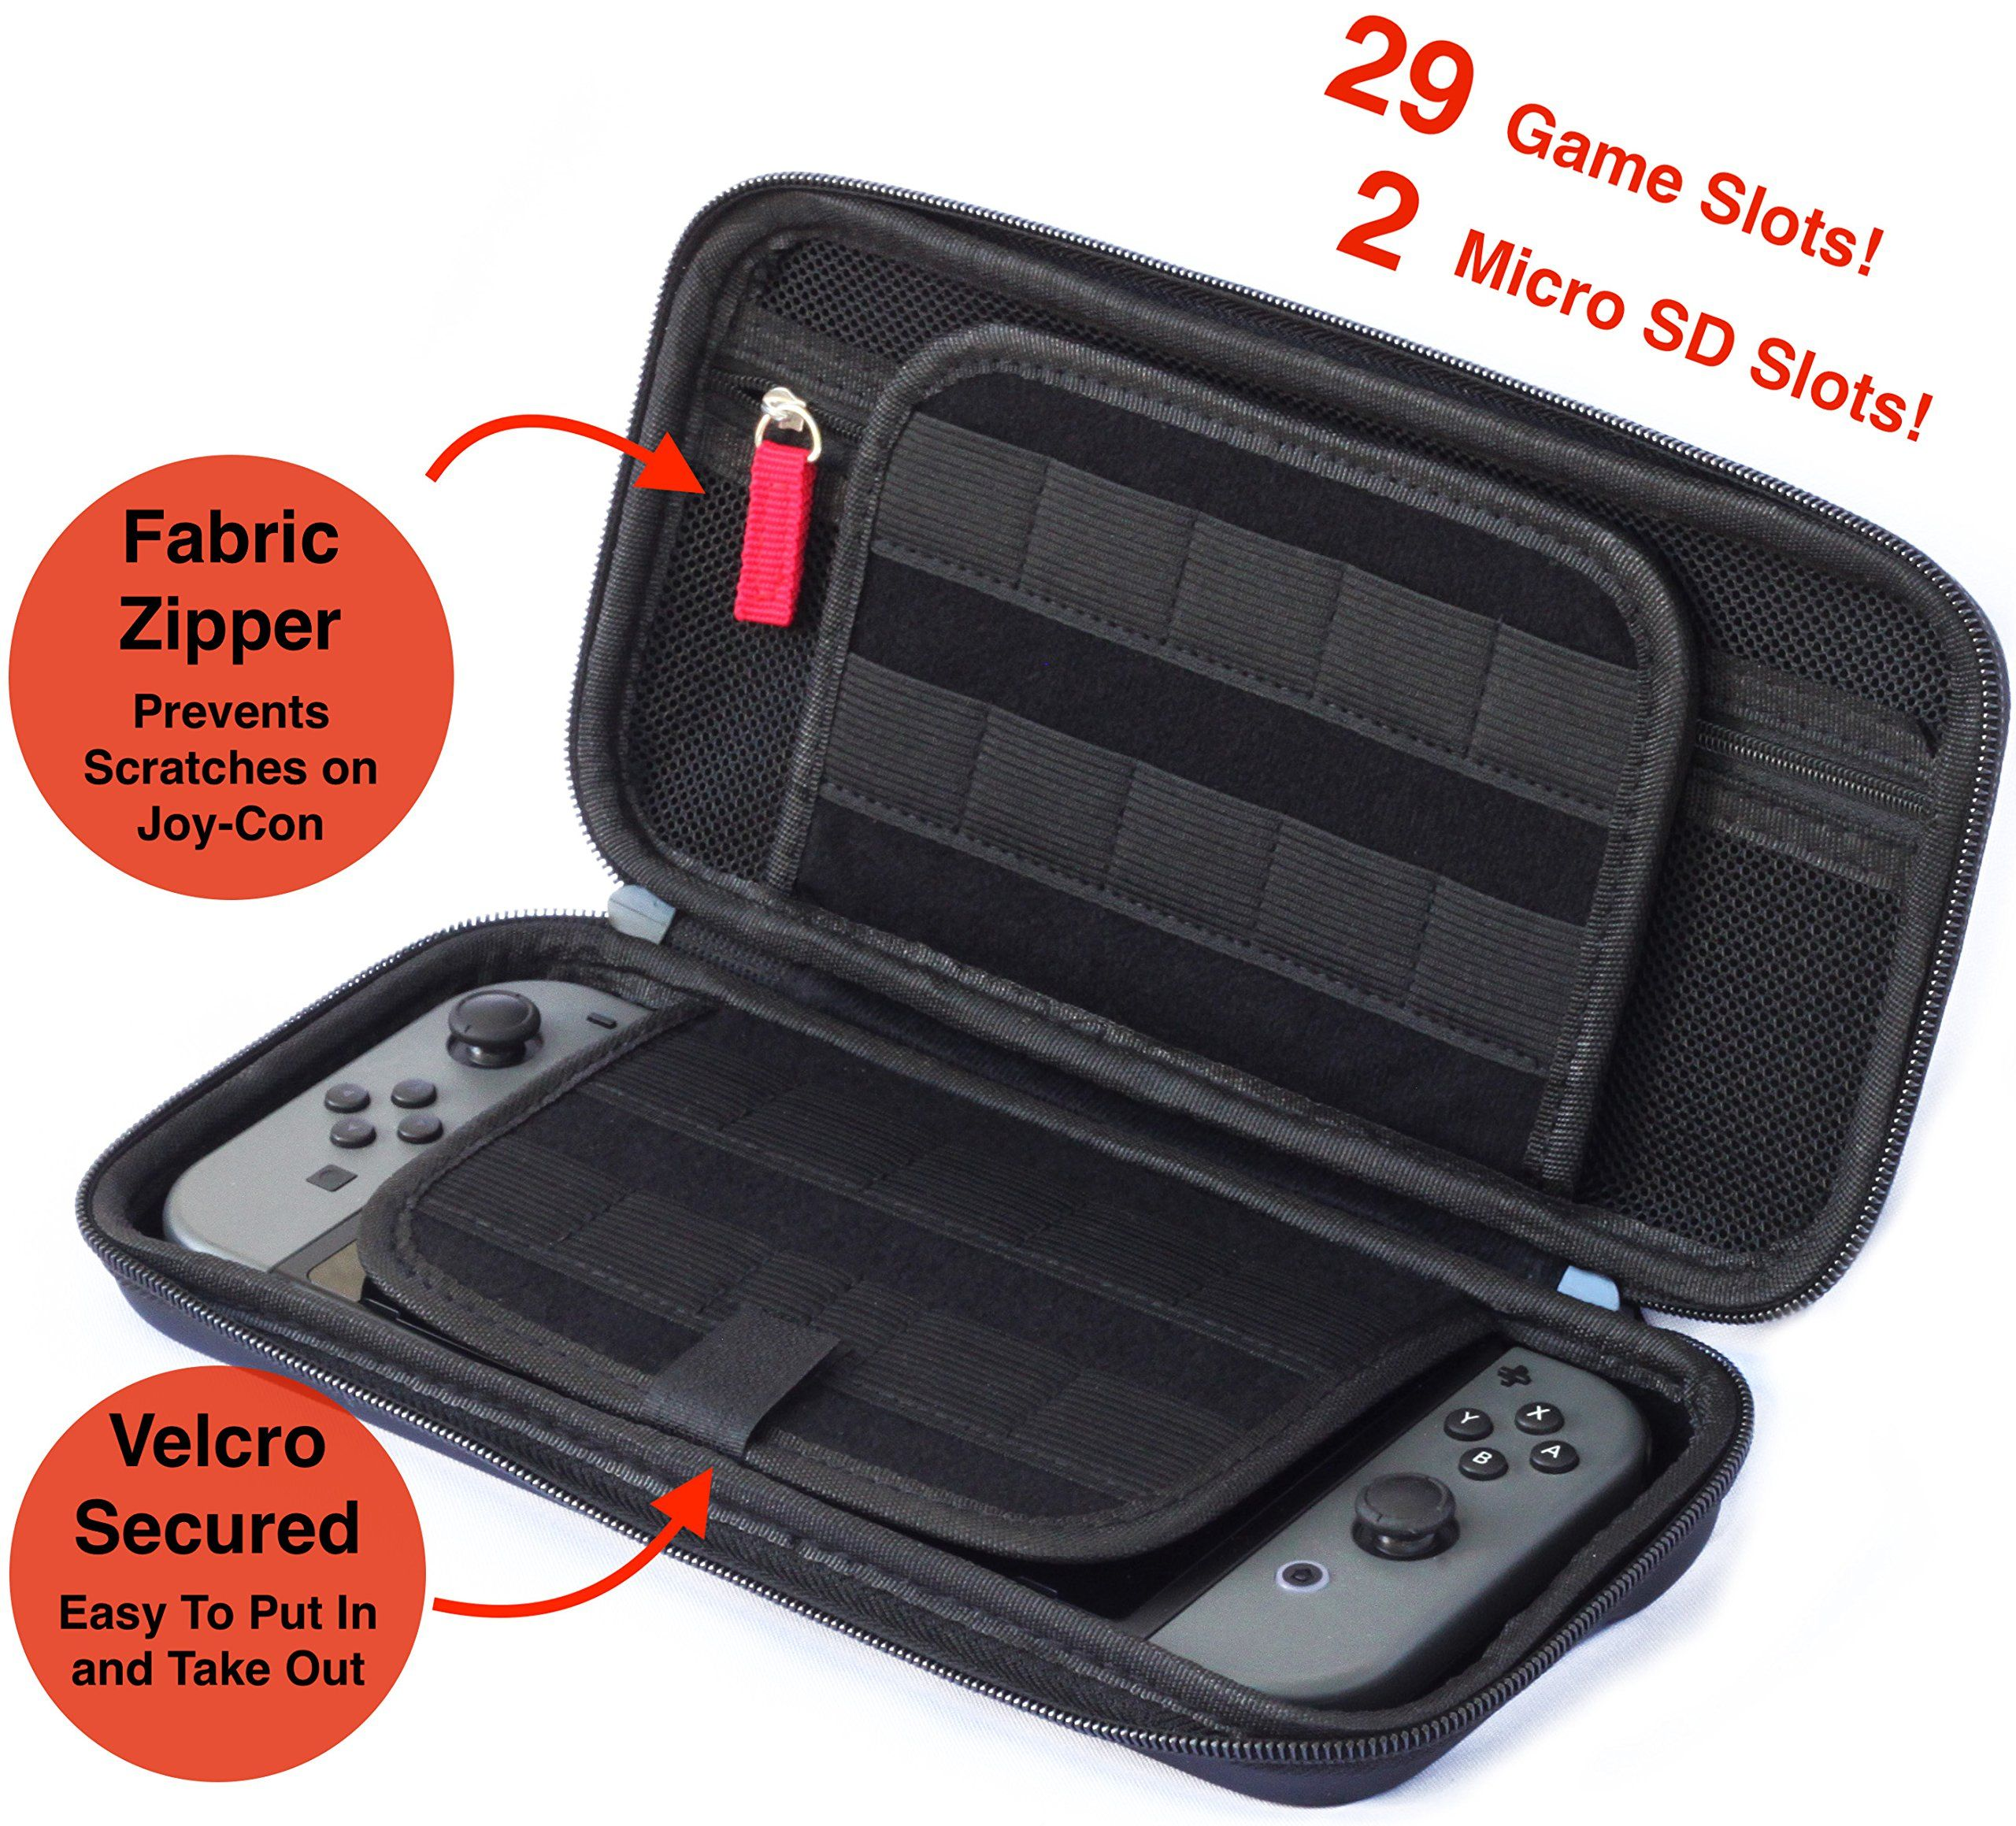 Nintendo Switch Accessories Case 29 Video Cartridges And 2 Micro Sd Card Holders Protective Hard